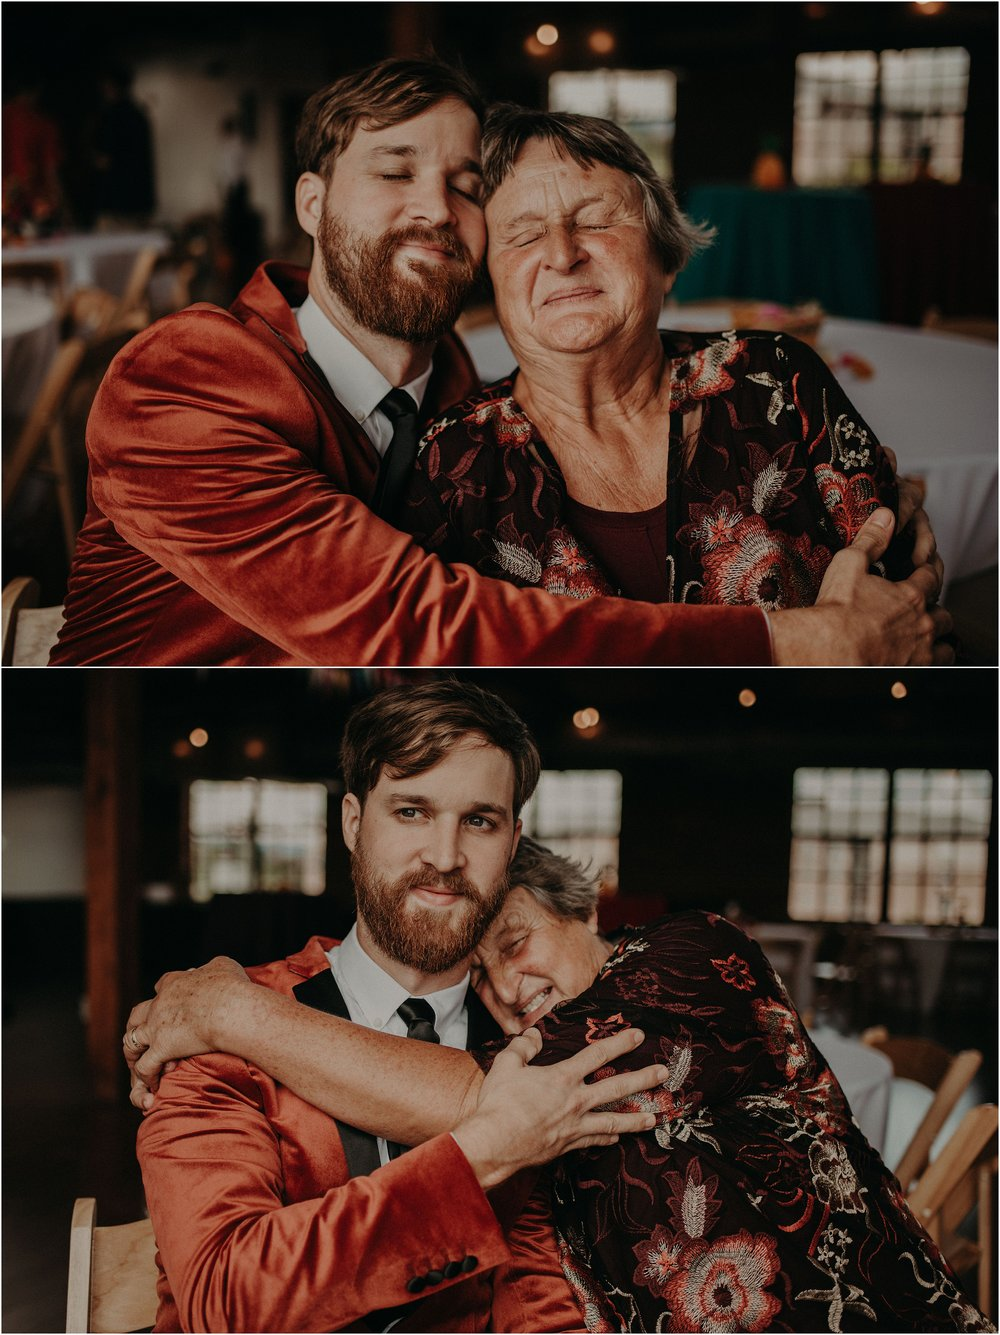 The groom and his mother share a sweet hug